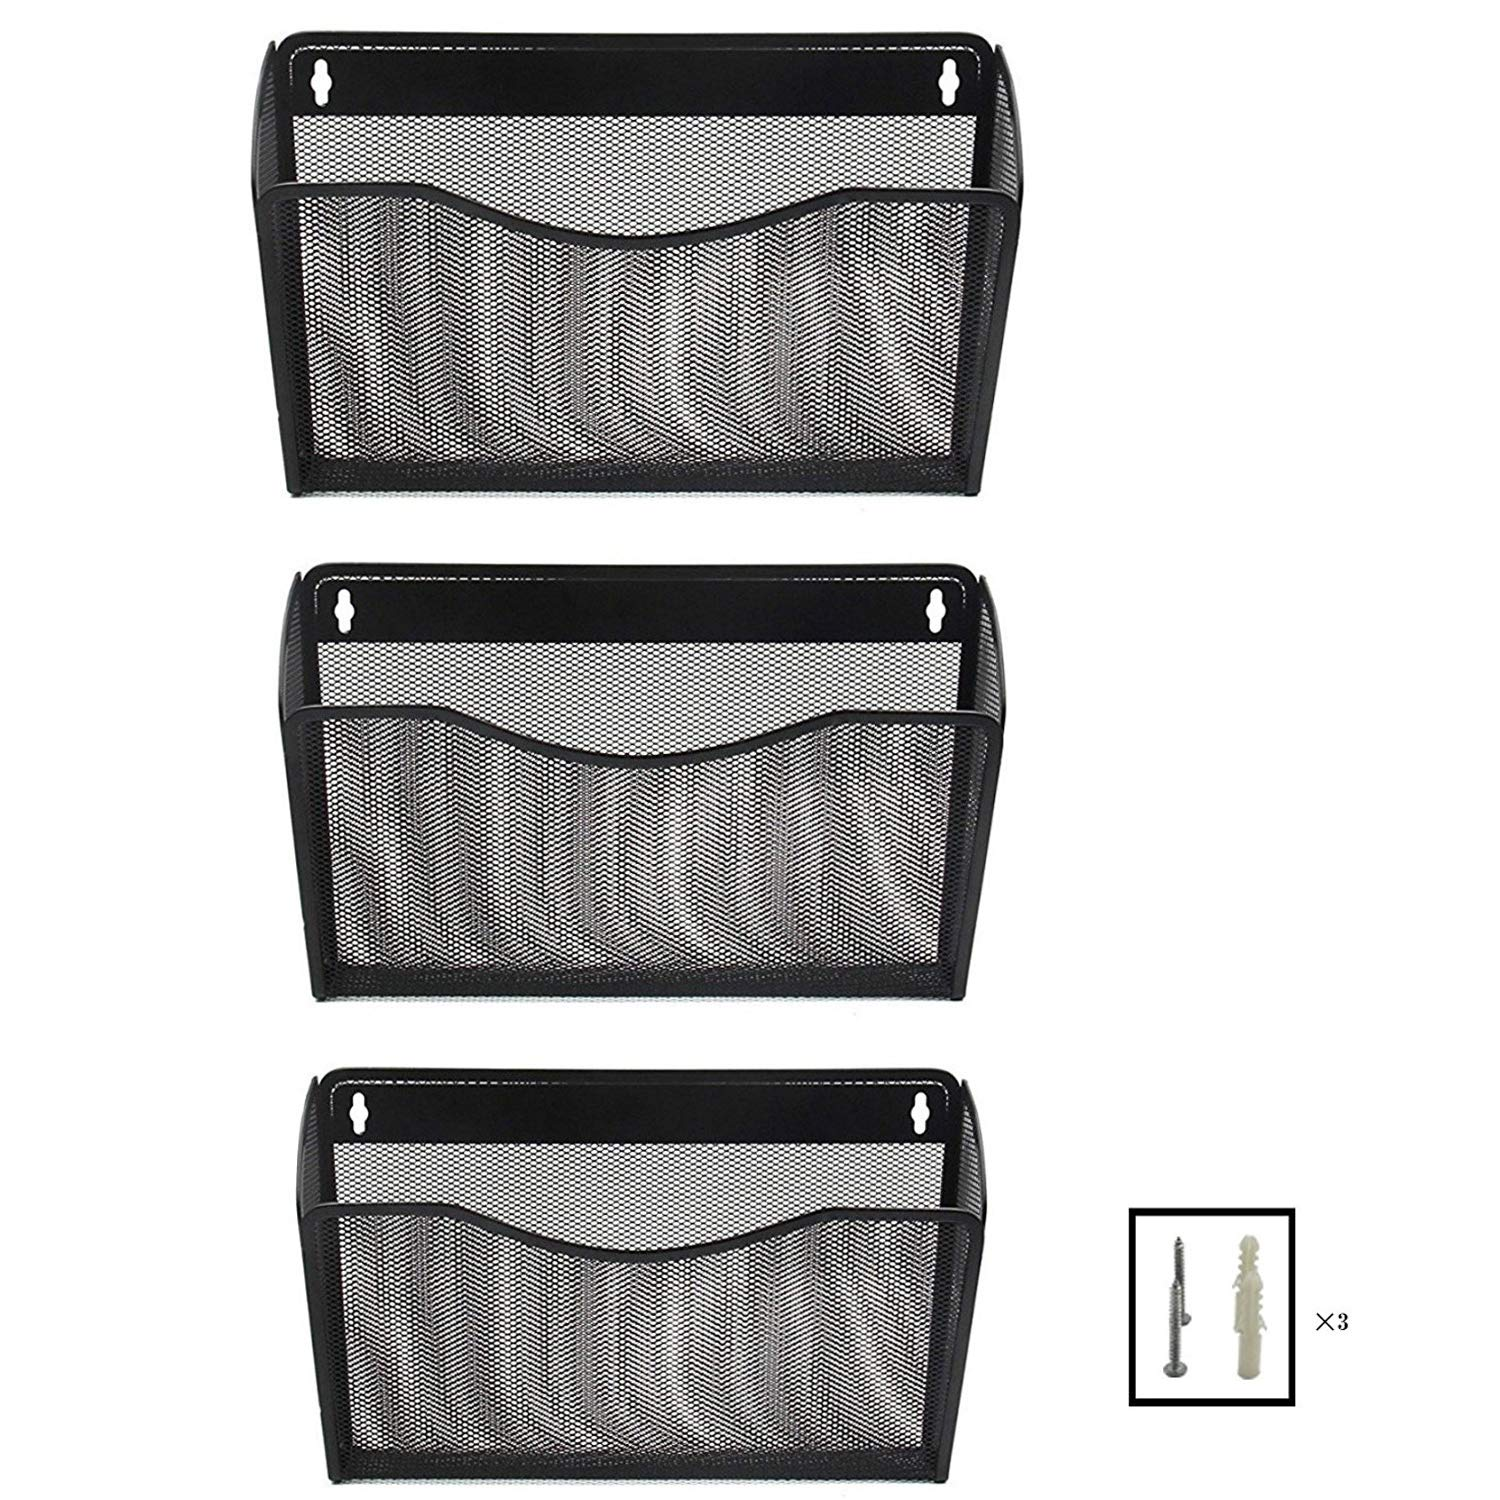 Mesh Wall Mounted Hanging File Tray Organizer - 3 Compartment Pockets Magazine Rack Letter Holder for Office Home Mailroom Sorter Rack - Black